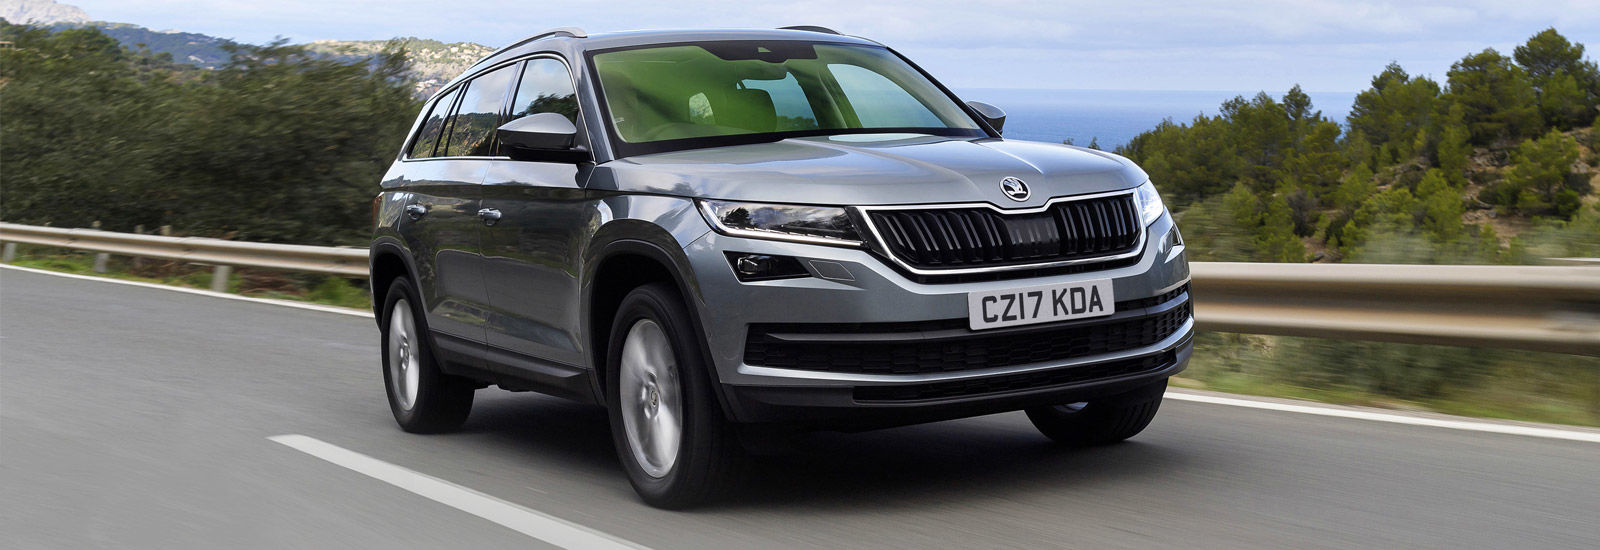 2020 skoda kodiaq coupe price specs and release date carwow. Black Bedroom Furniture Sets. Home Design Ideas